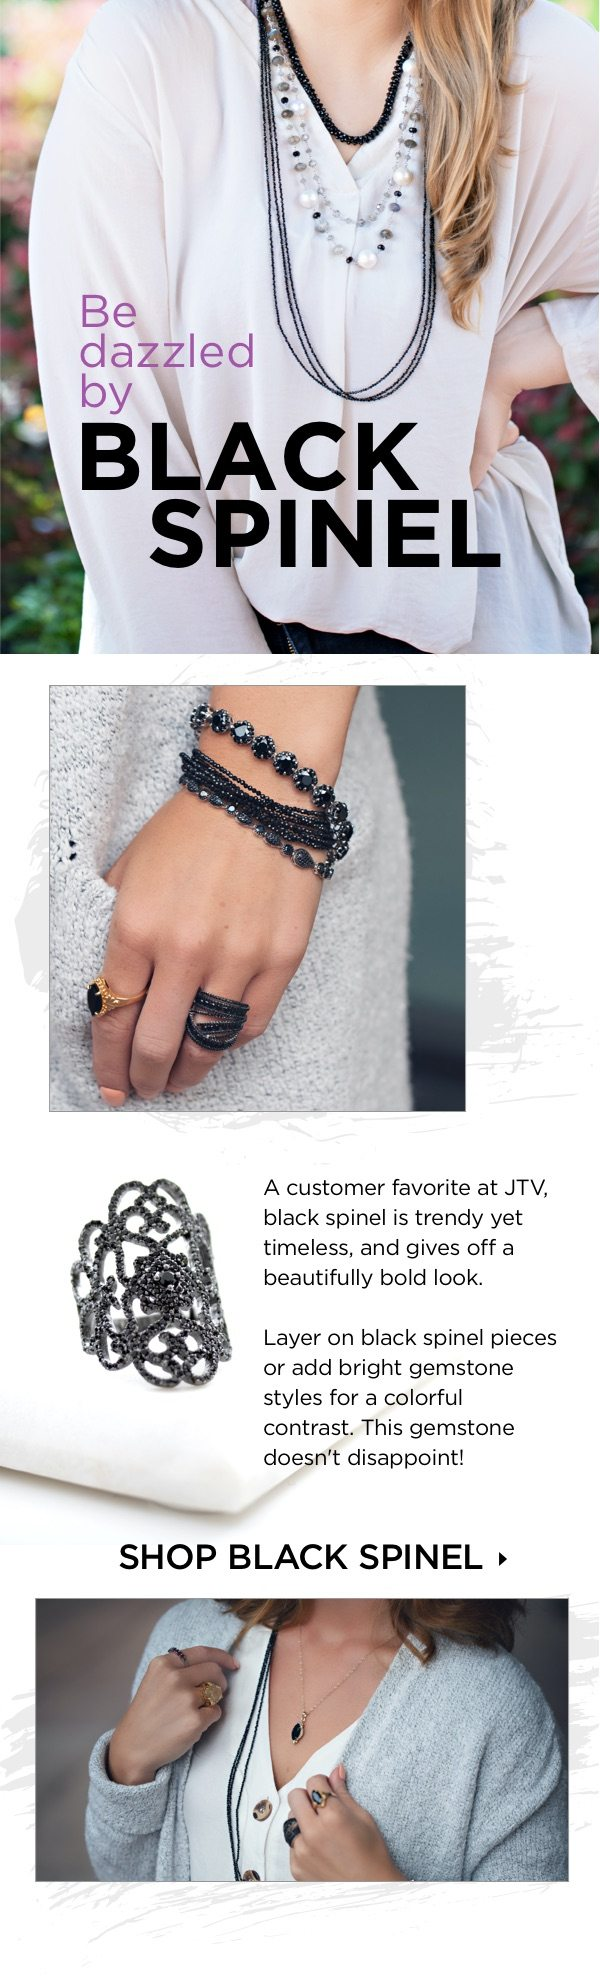 A customer favorite at JTV, black spinel is trendy yet timeless, and gives off a beautifully bold look.